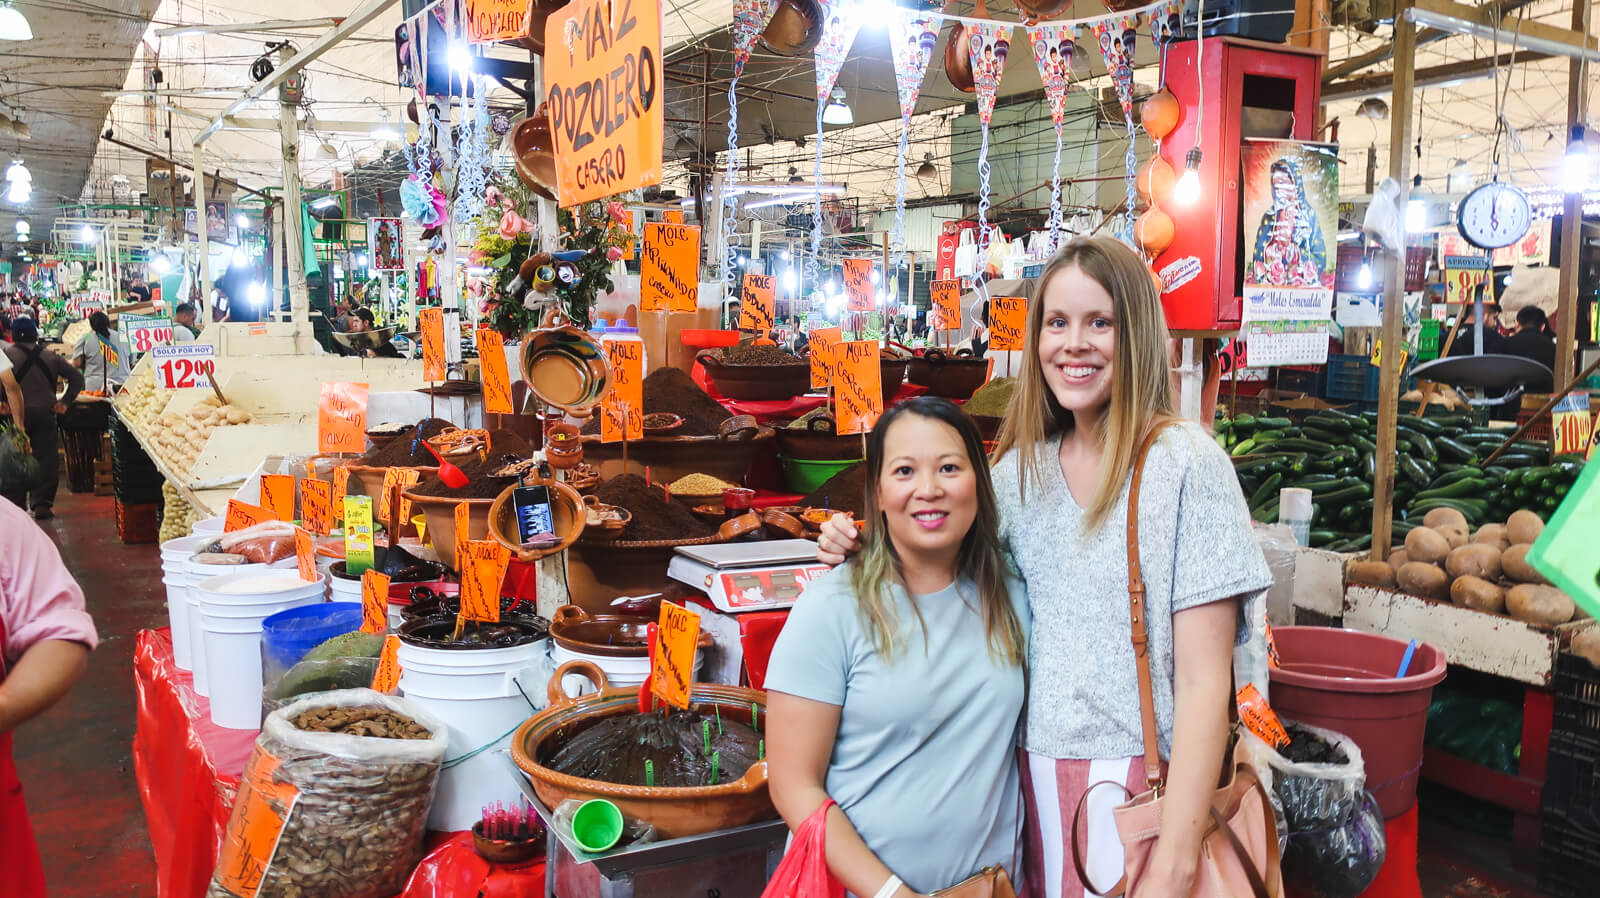 Two women stand in front of a stand selling spices in a Mexico City market